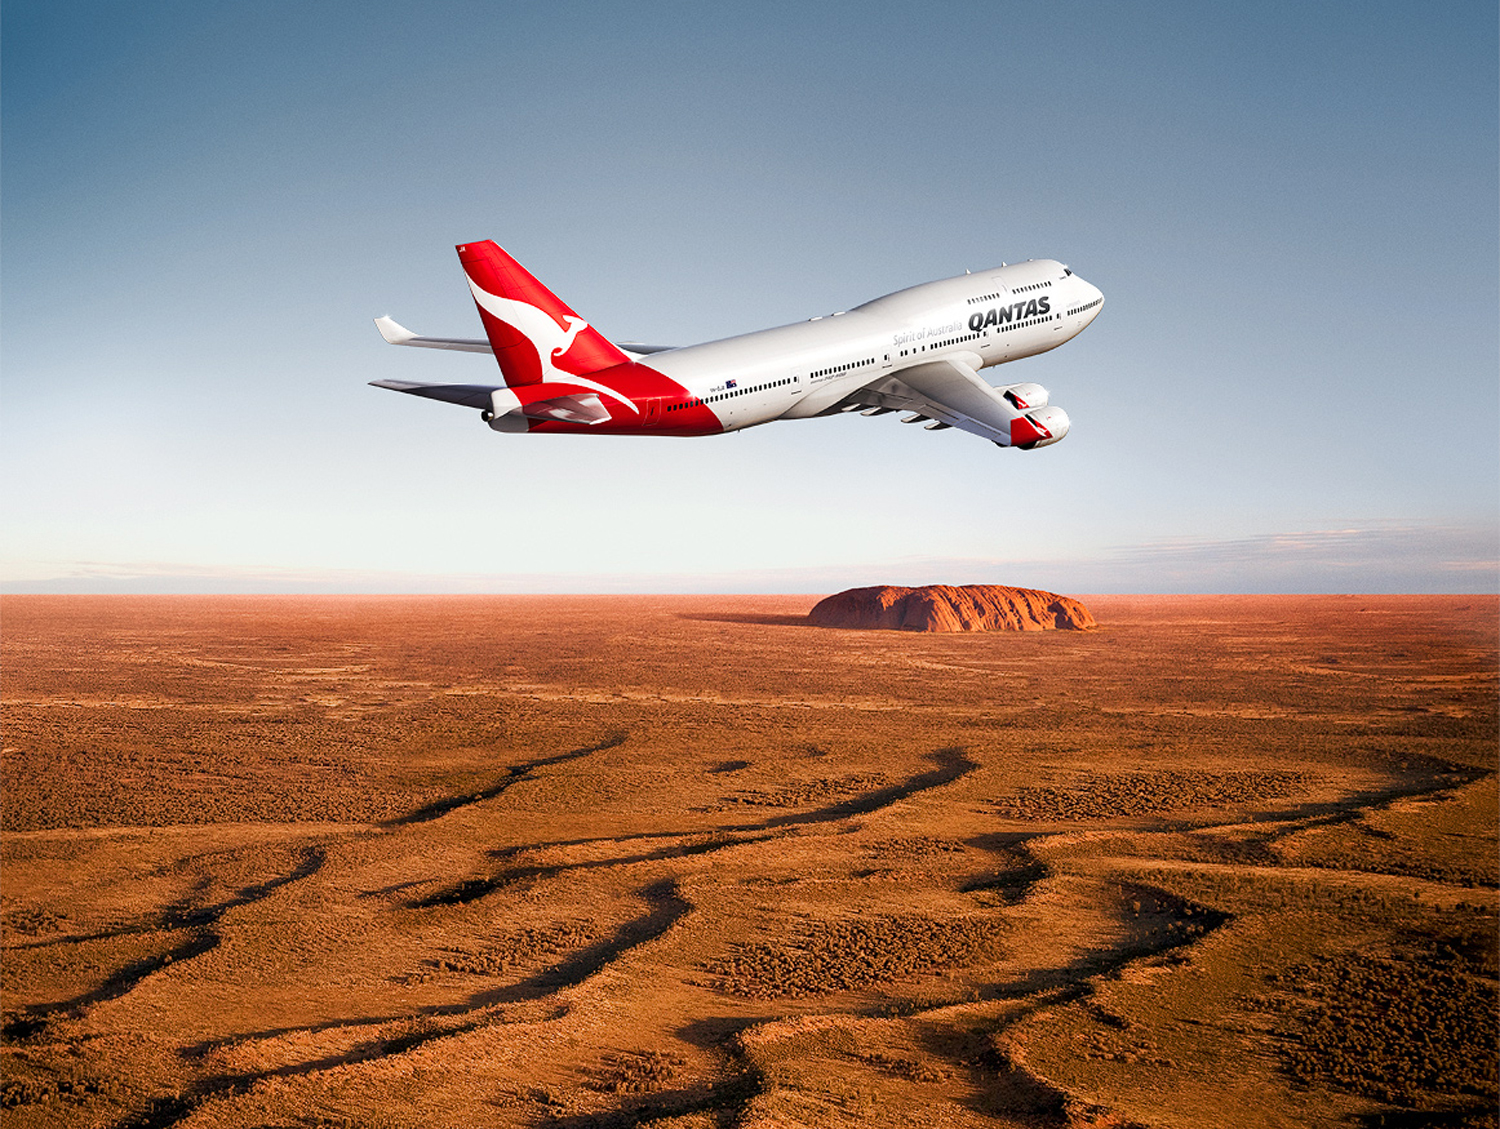 Qantas flying over Northern Territory outback with Ayres rock in background